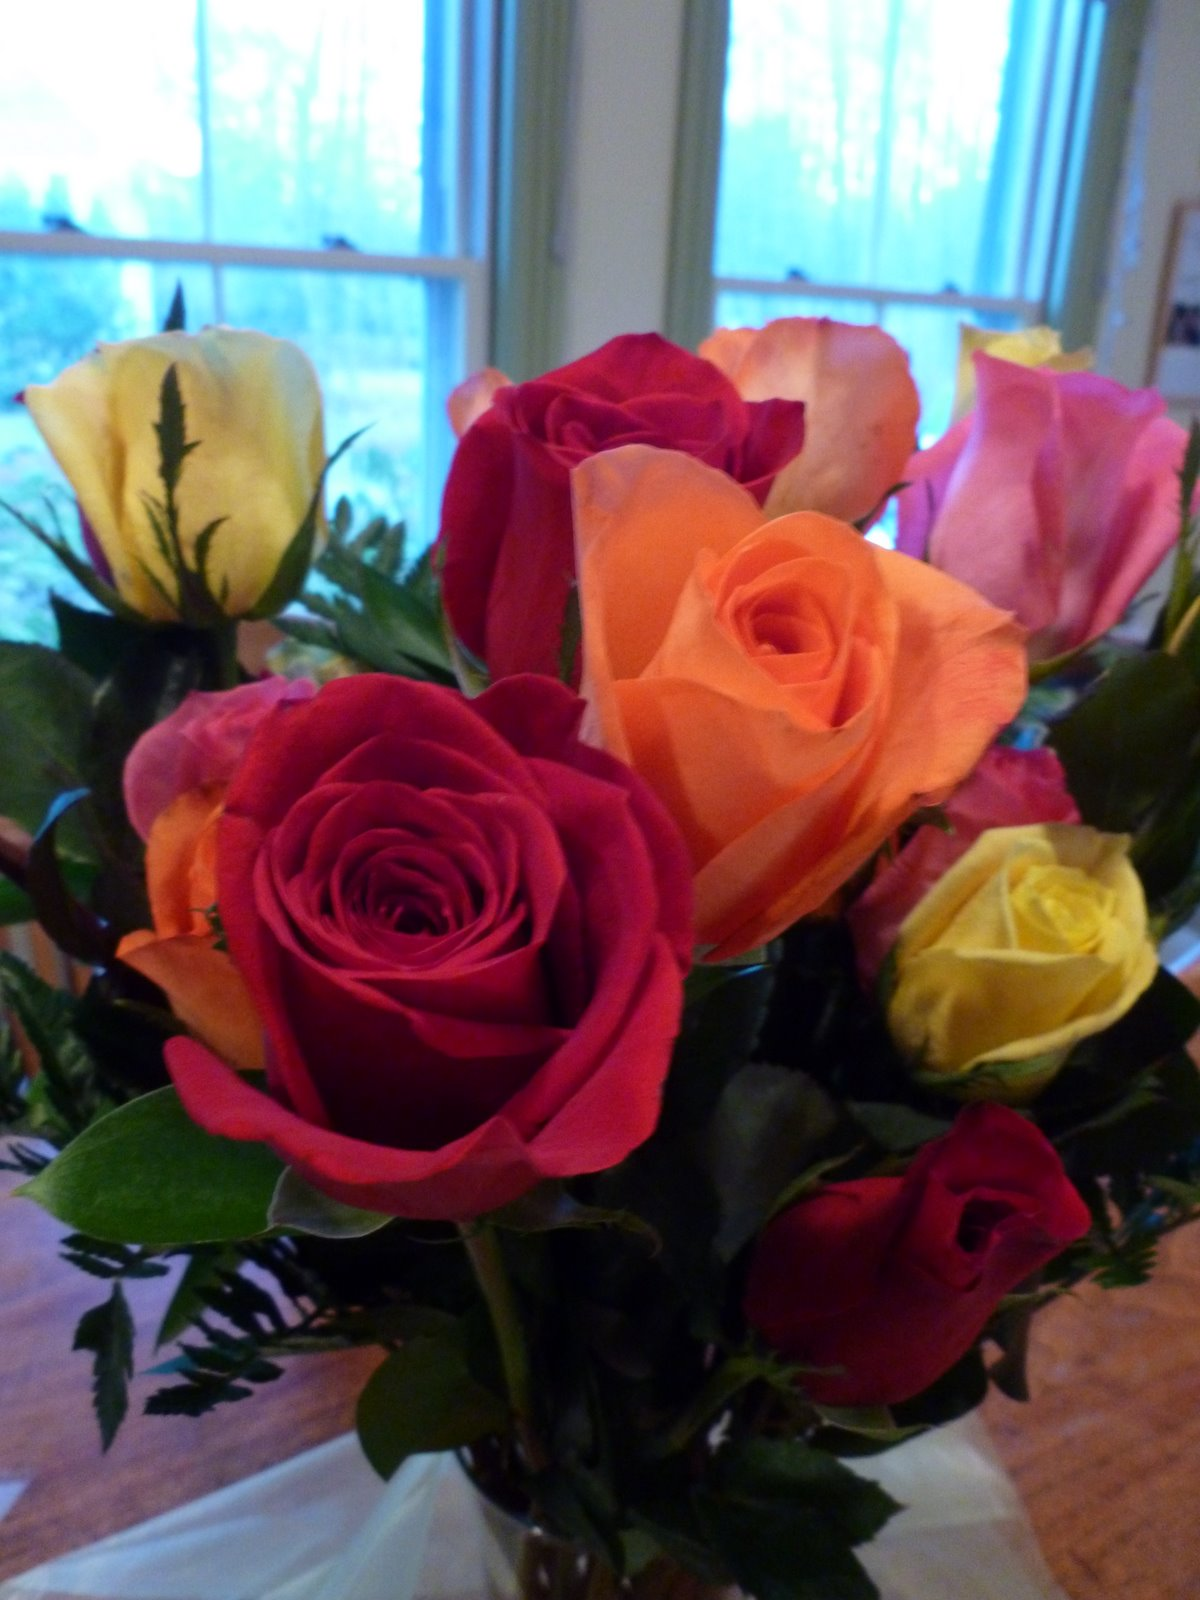 Moore or less cooking easy recipes for those who like to cook and bake happy birthday to me i returned home from work to a gift from my wonderful friend lily bellee most beautiful bouquet of roses that i have ever seen izmirmasajfo